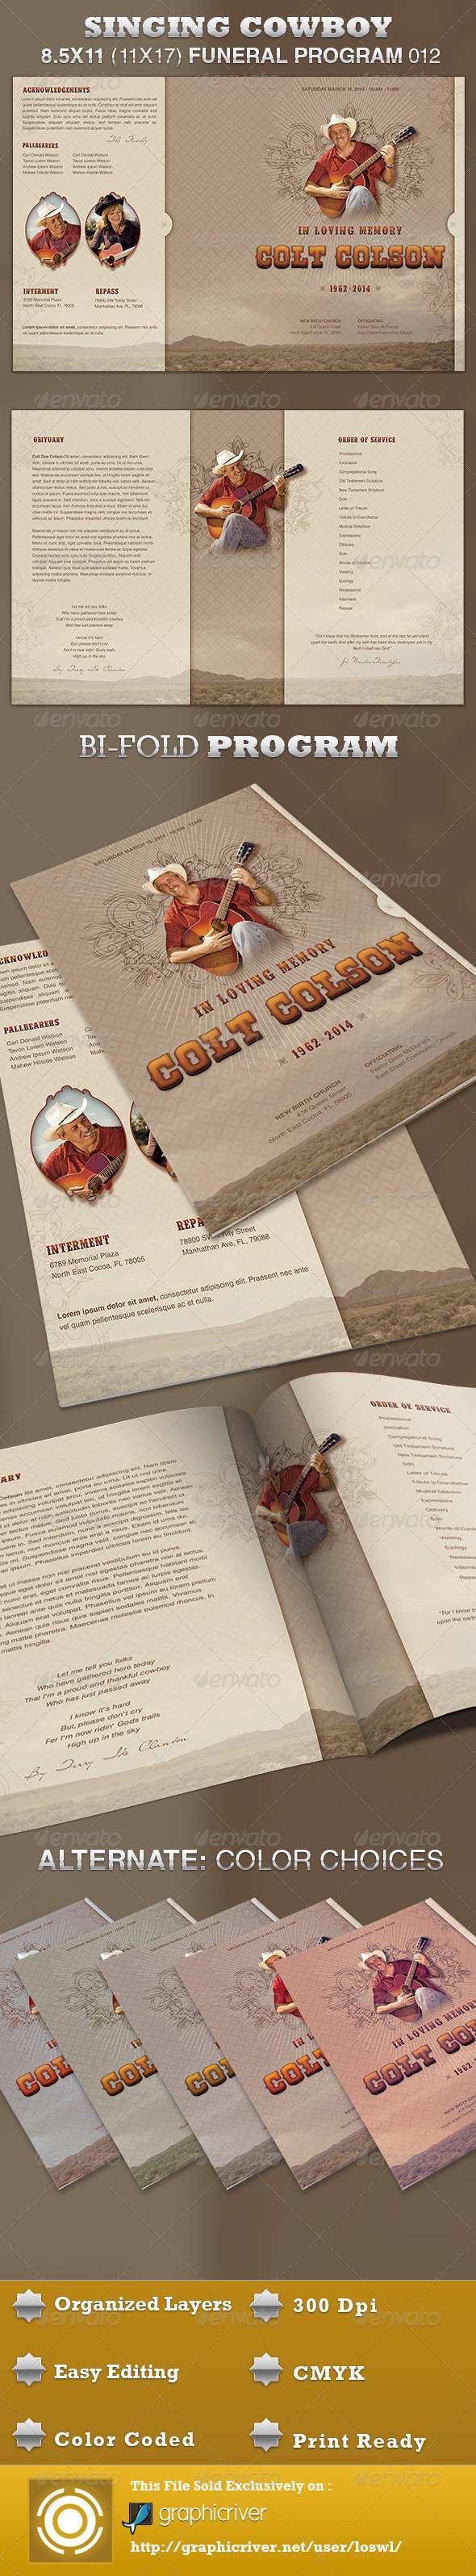 Singing Cowboy Funeral Program Template 012 - Informational Brochures